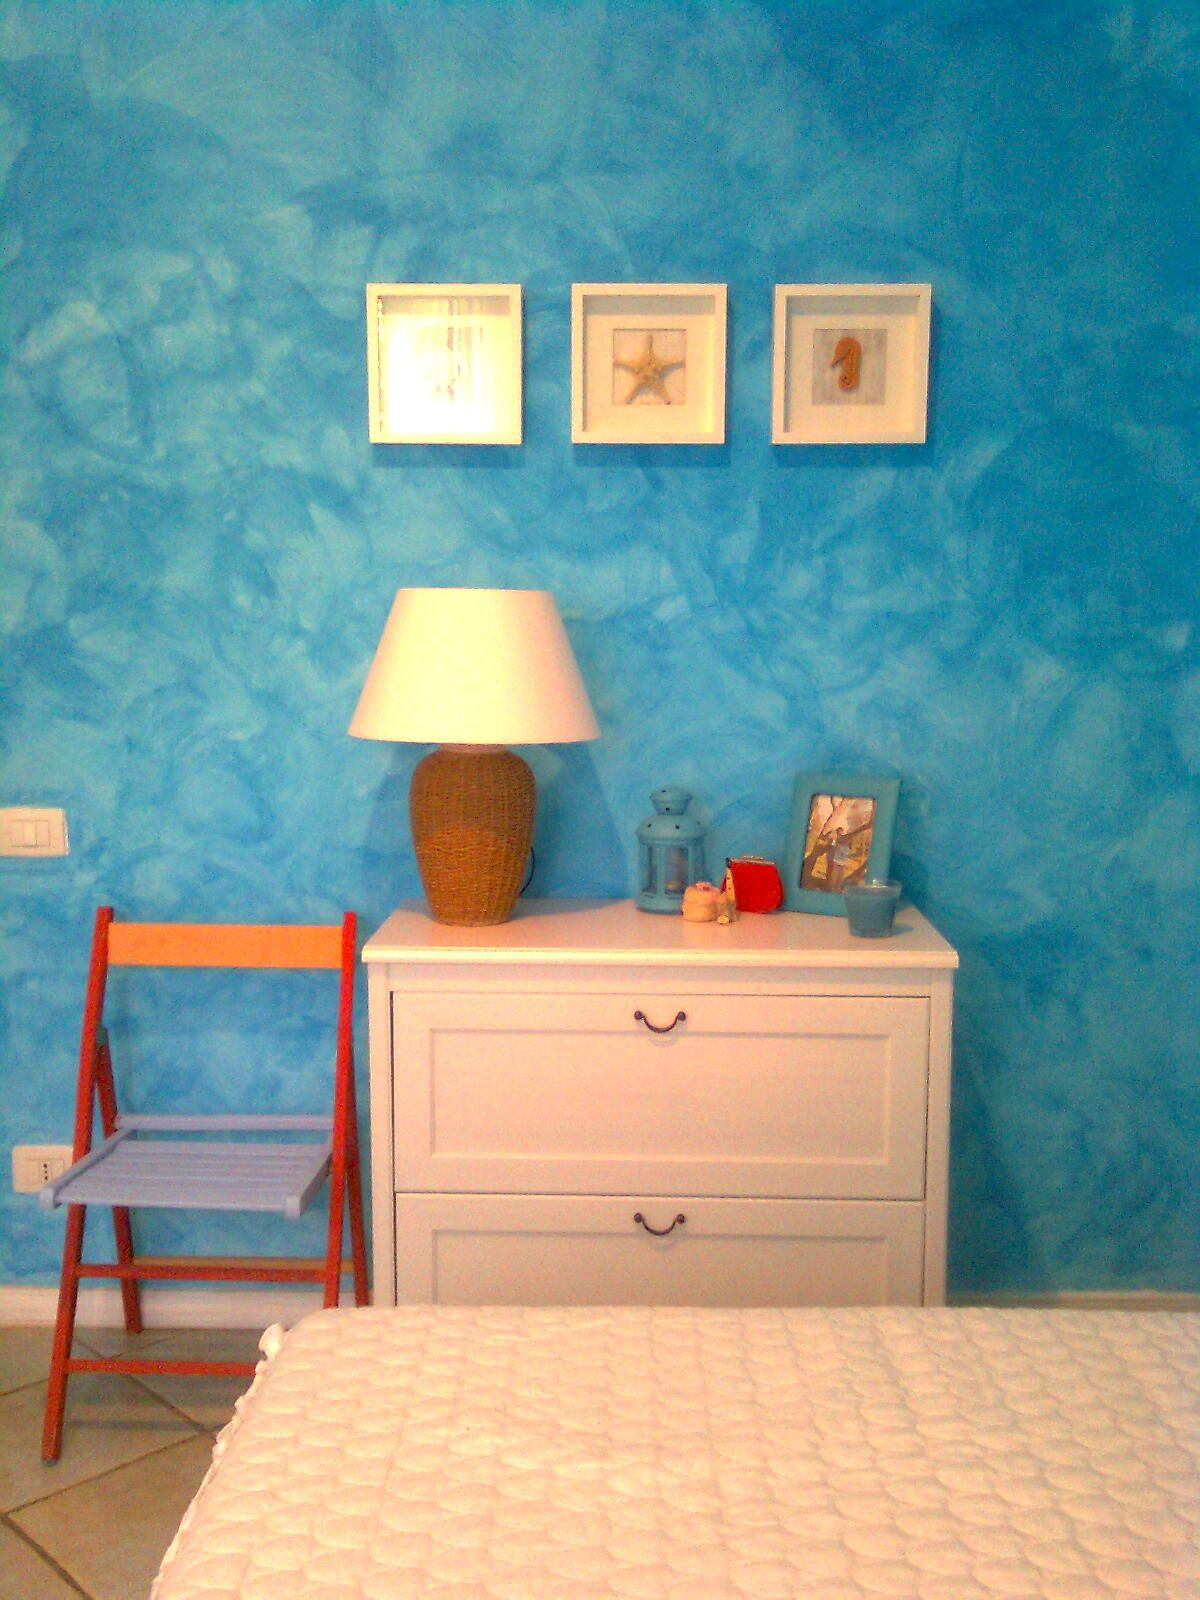 Faux Finish Brilliant Faux Painting 101 Tips Tricks And Inspiring Ideas For Faux Finishes